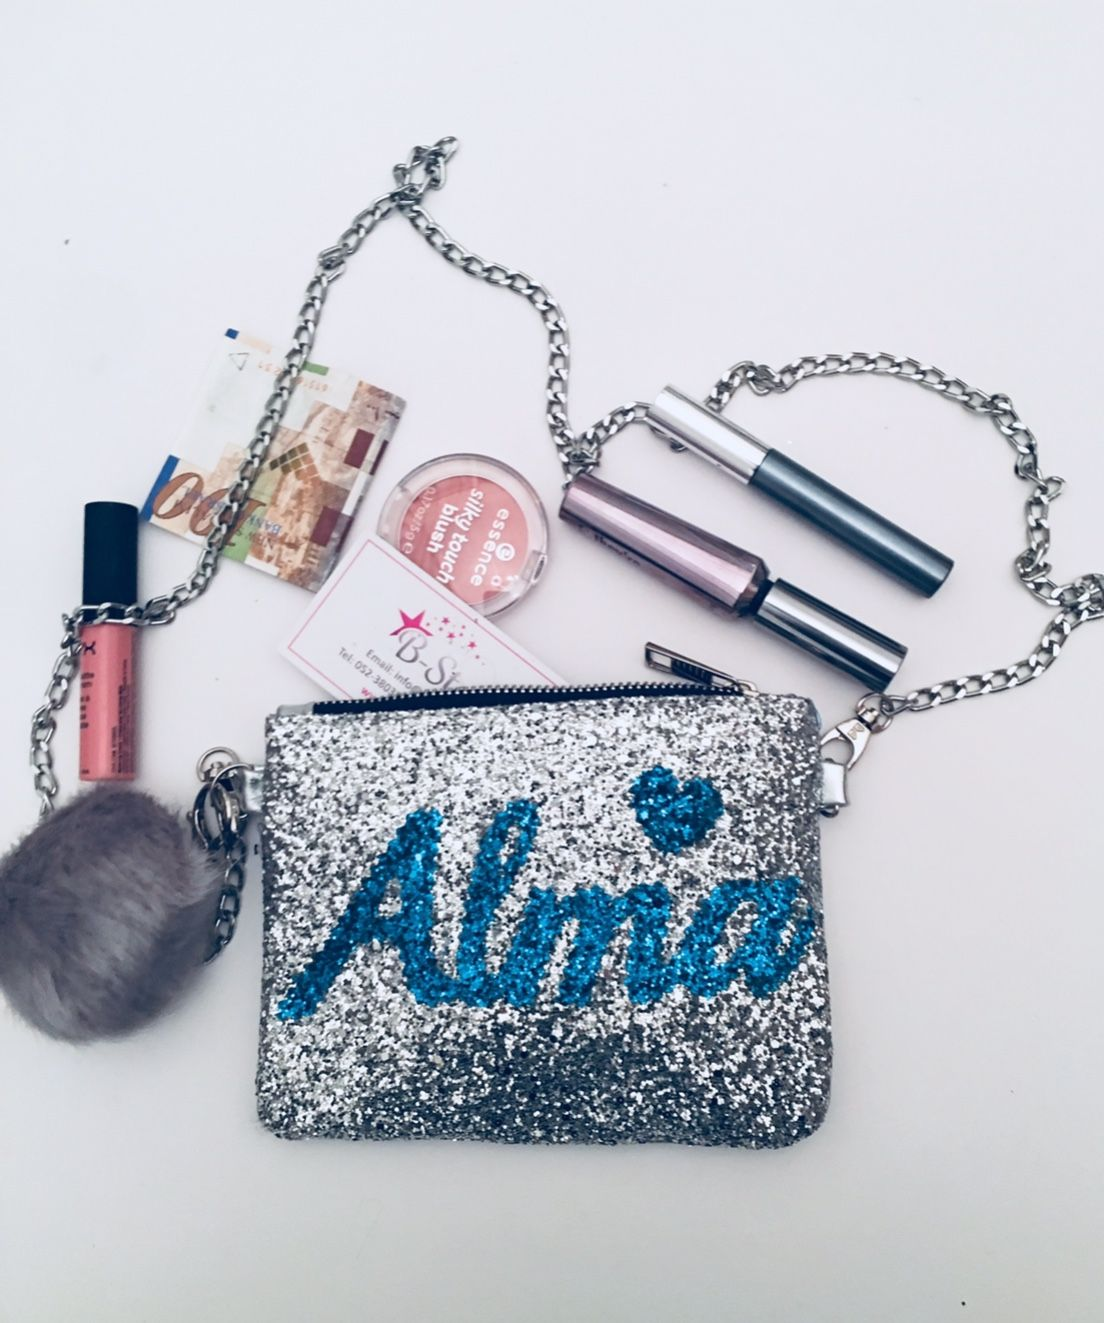 Personalized Makeup Bag Teal, Glitter Makeup Pouch Custom